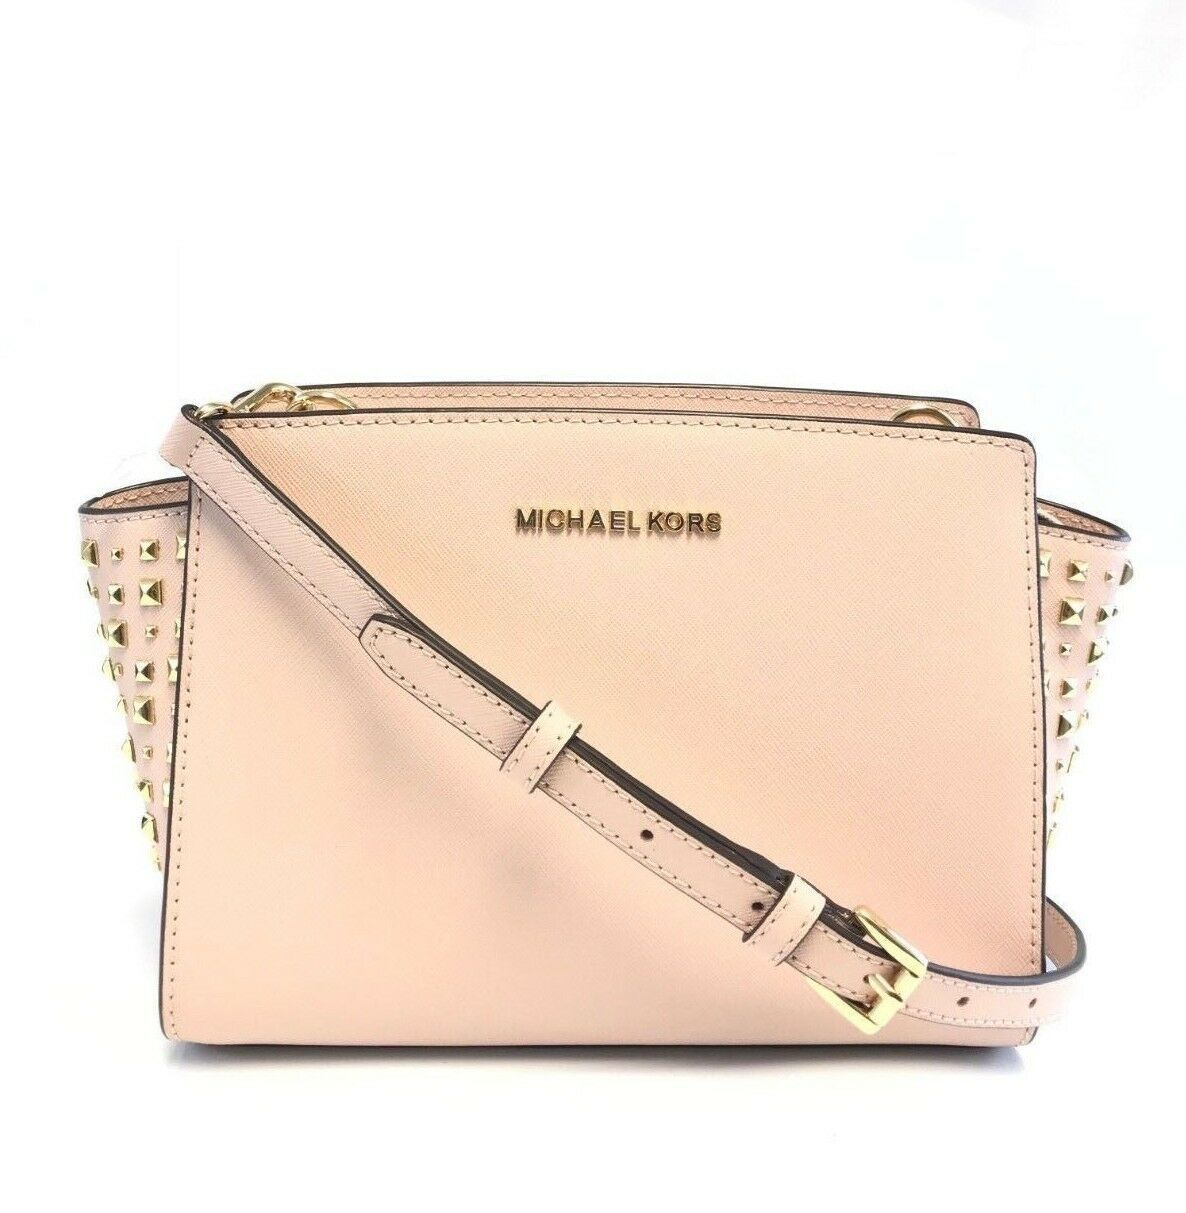 Primary image for Michael Kors Stud Ballet Pink Selma Medium Messenger Crossbody Bag